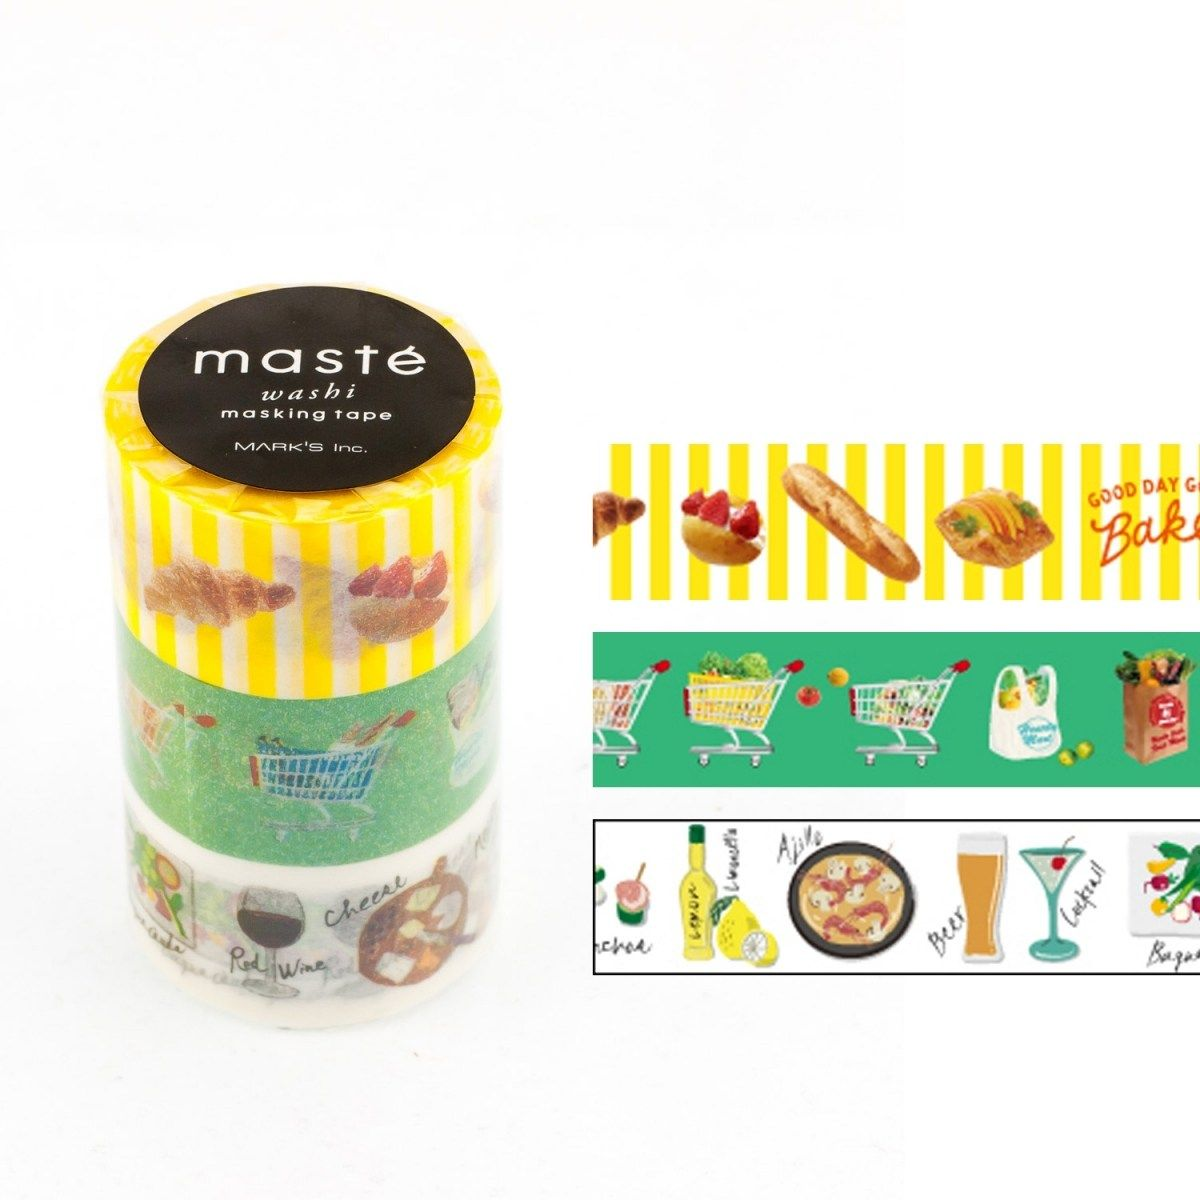 WASH TAPE MASTÉ AMAZING LIFE 2 KIT C/ 3